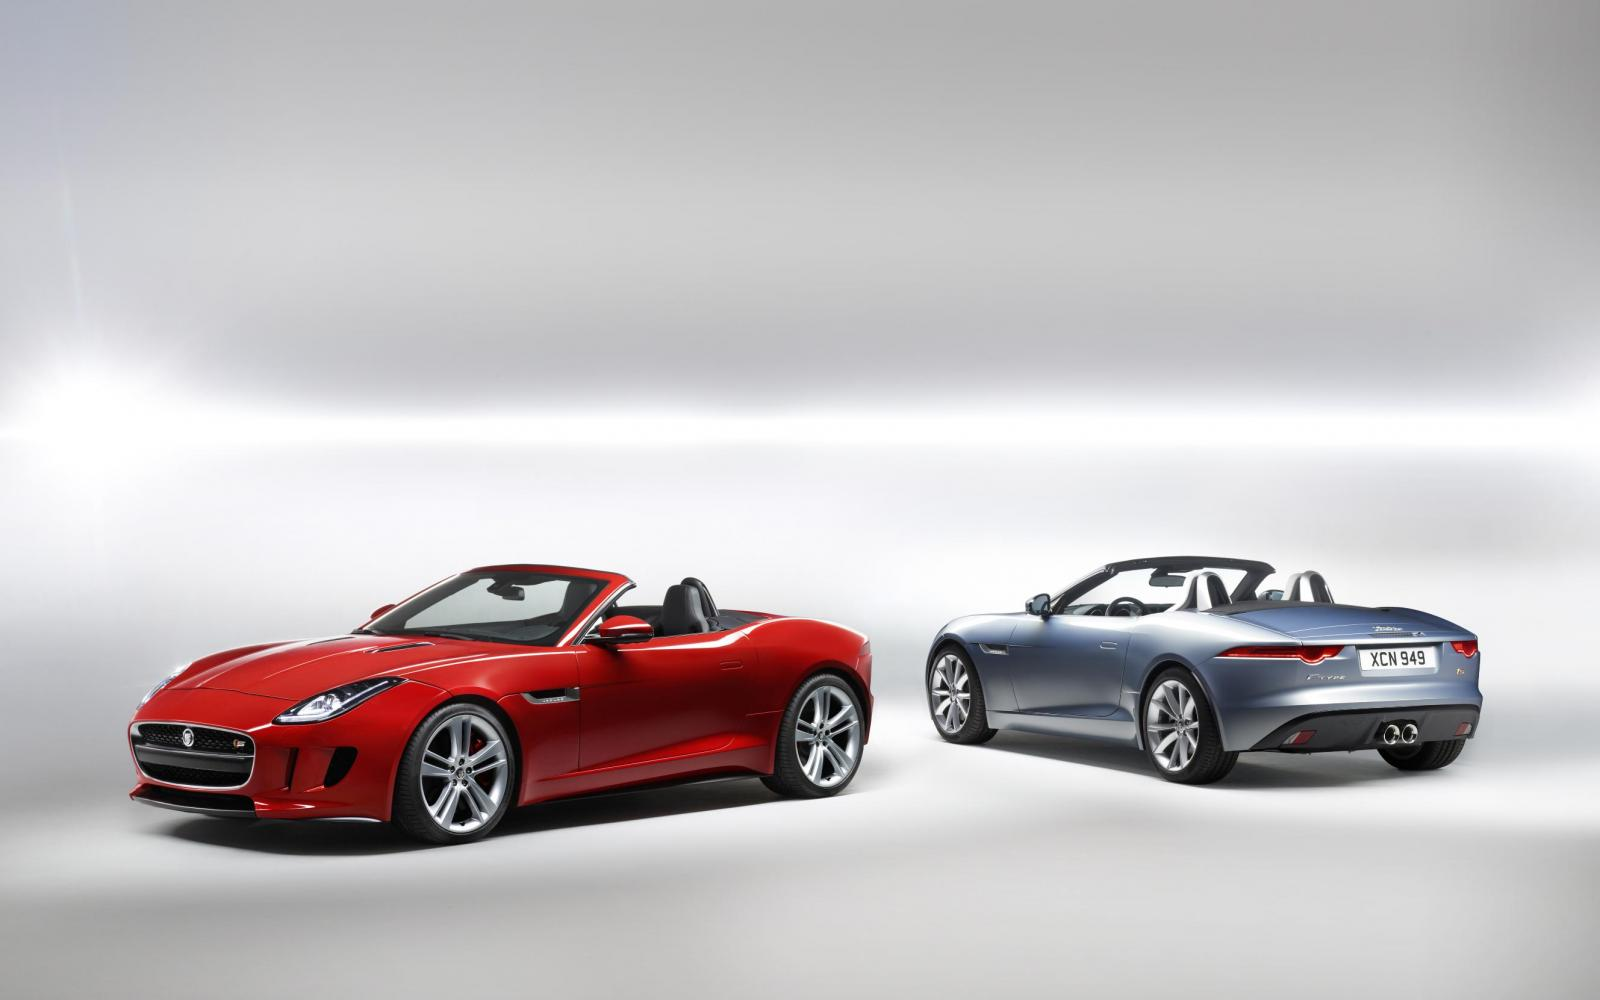 2013 Jaguar F Type 2013 Jaguar F Type is priced at $ 69000 for the US market